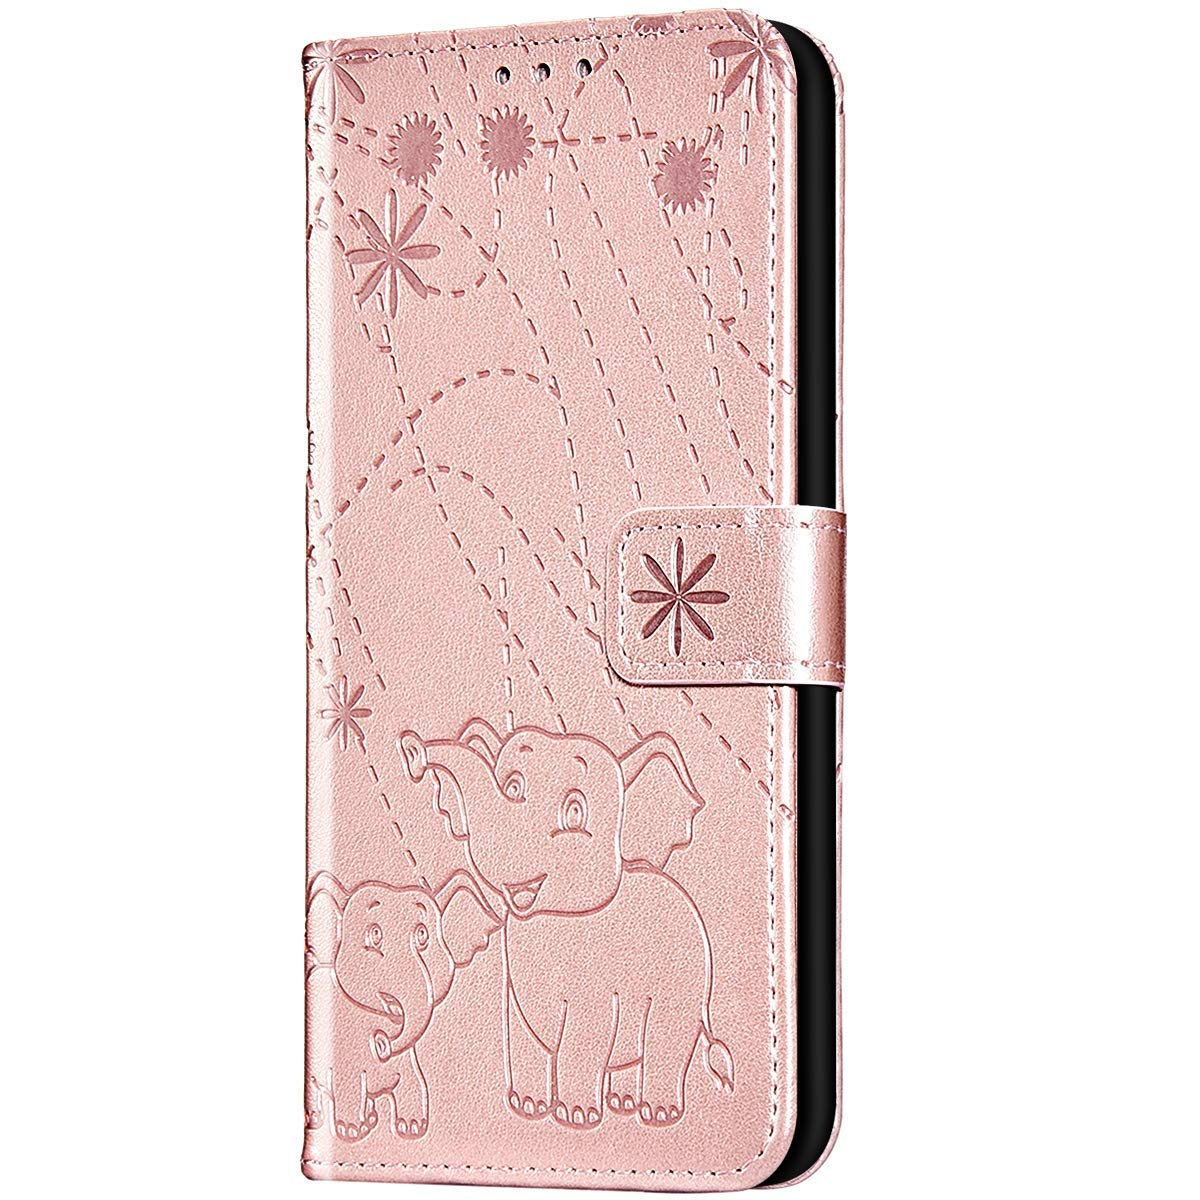 Case for iPhone 6 Plus/6S Plus/iPhone 7 Plus/8 Plus Flip Case Premium PU Leather Embossed with Card Slots,Wristlet and Magnetic Closure Protective Cover for iPhone 6/6S/7/8 Plus,Rose gold by ikasus